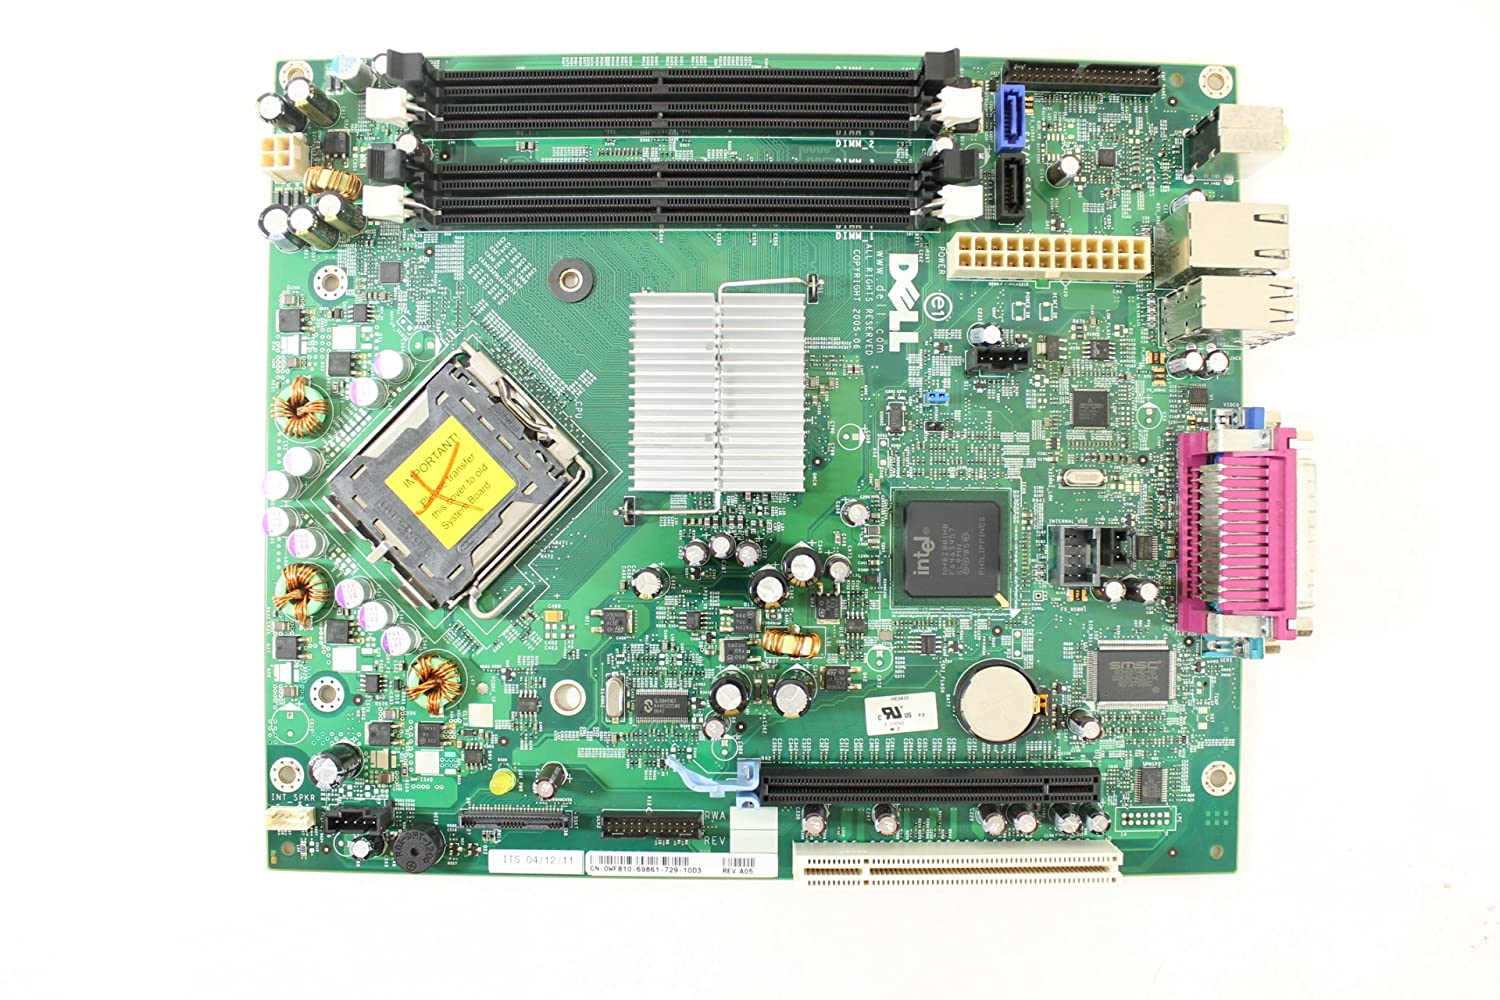 DELL OPTIPLEX 745 MOTHERBOARD TREIBER